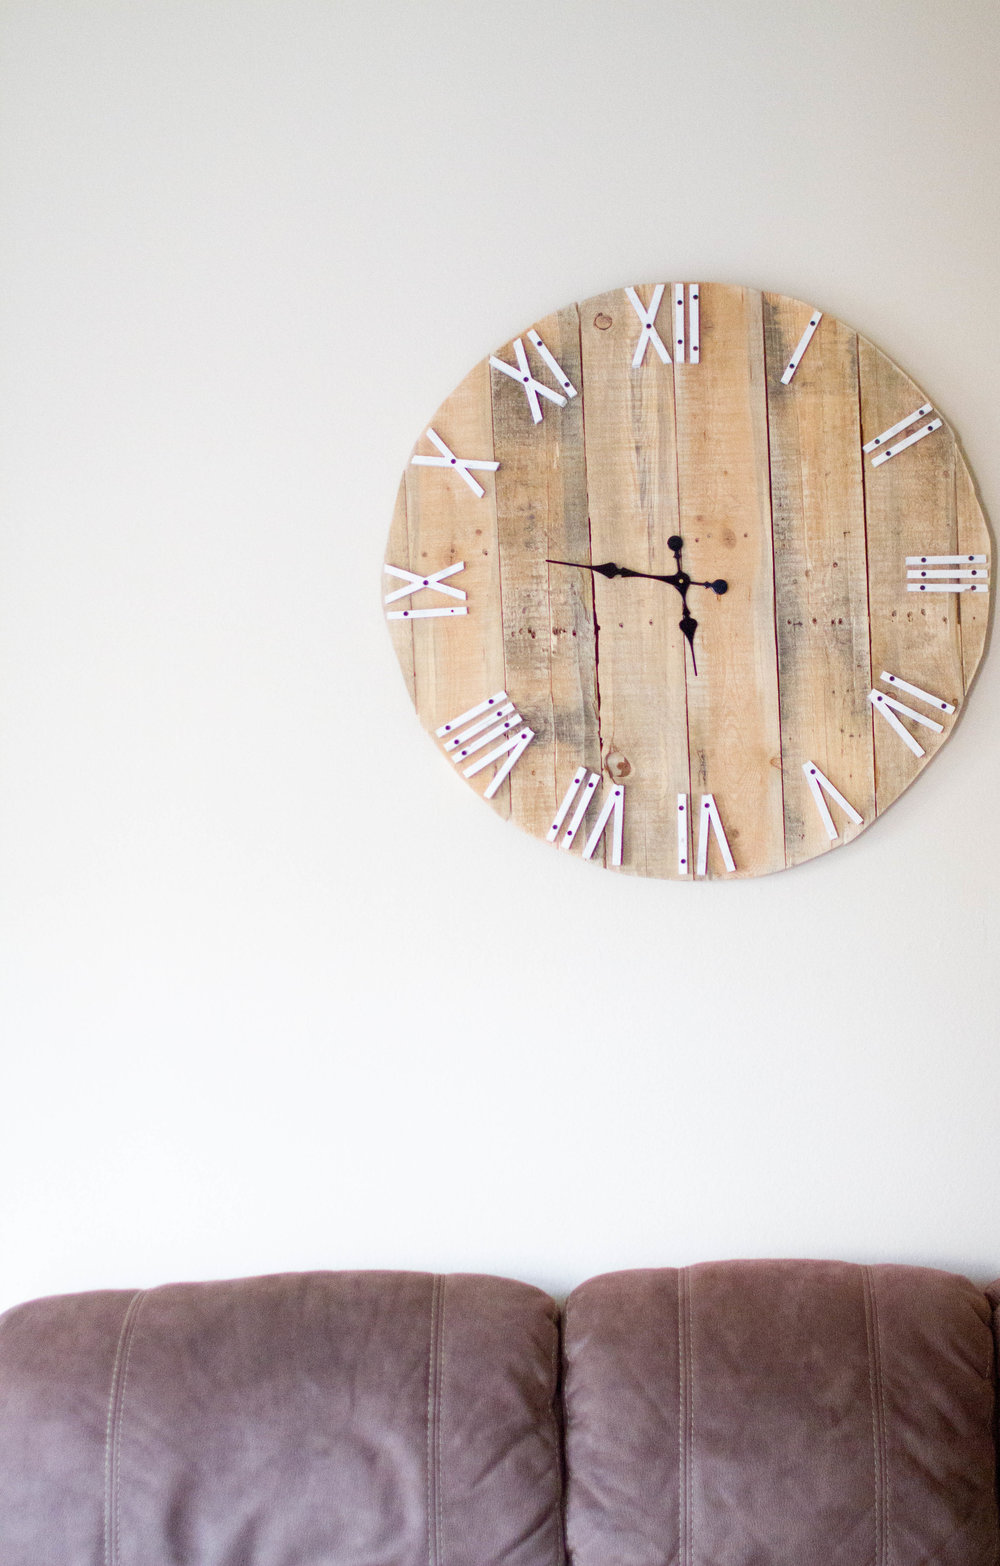 Shop similar Etsy clock  HERE  for $100